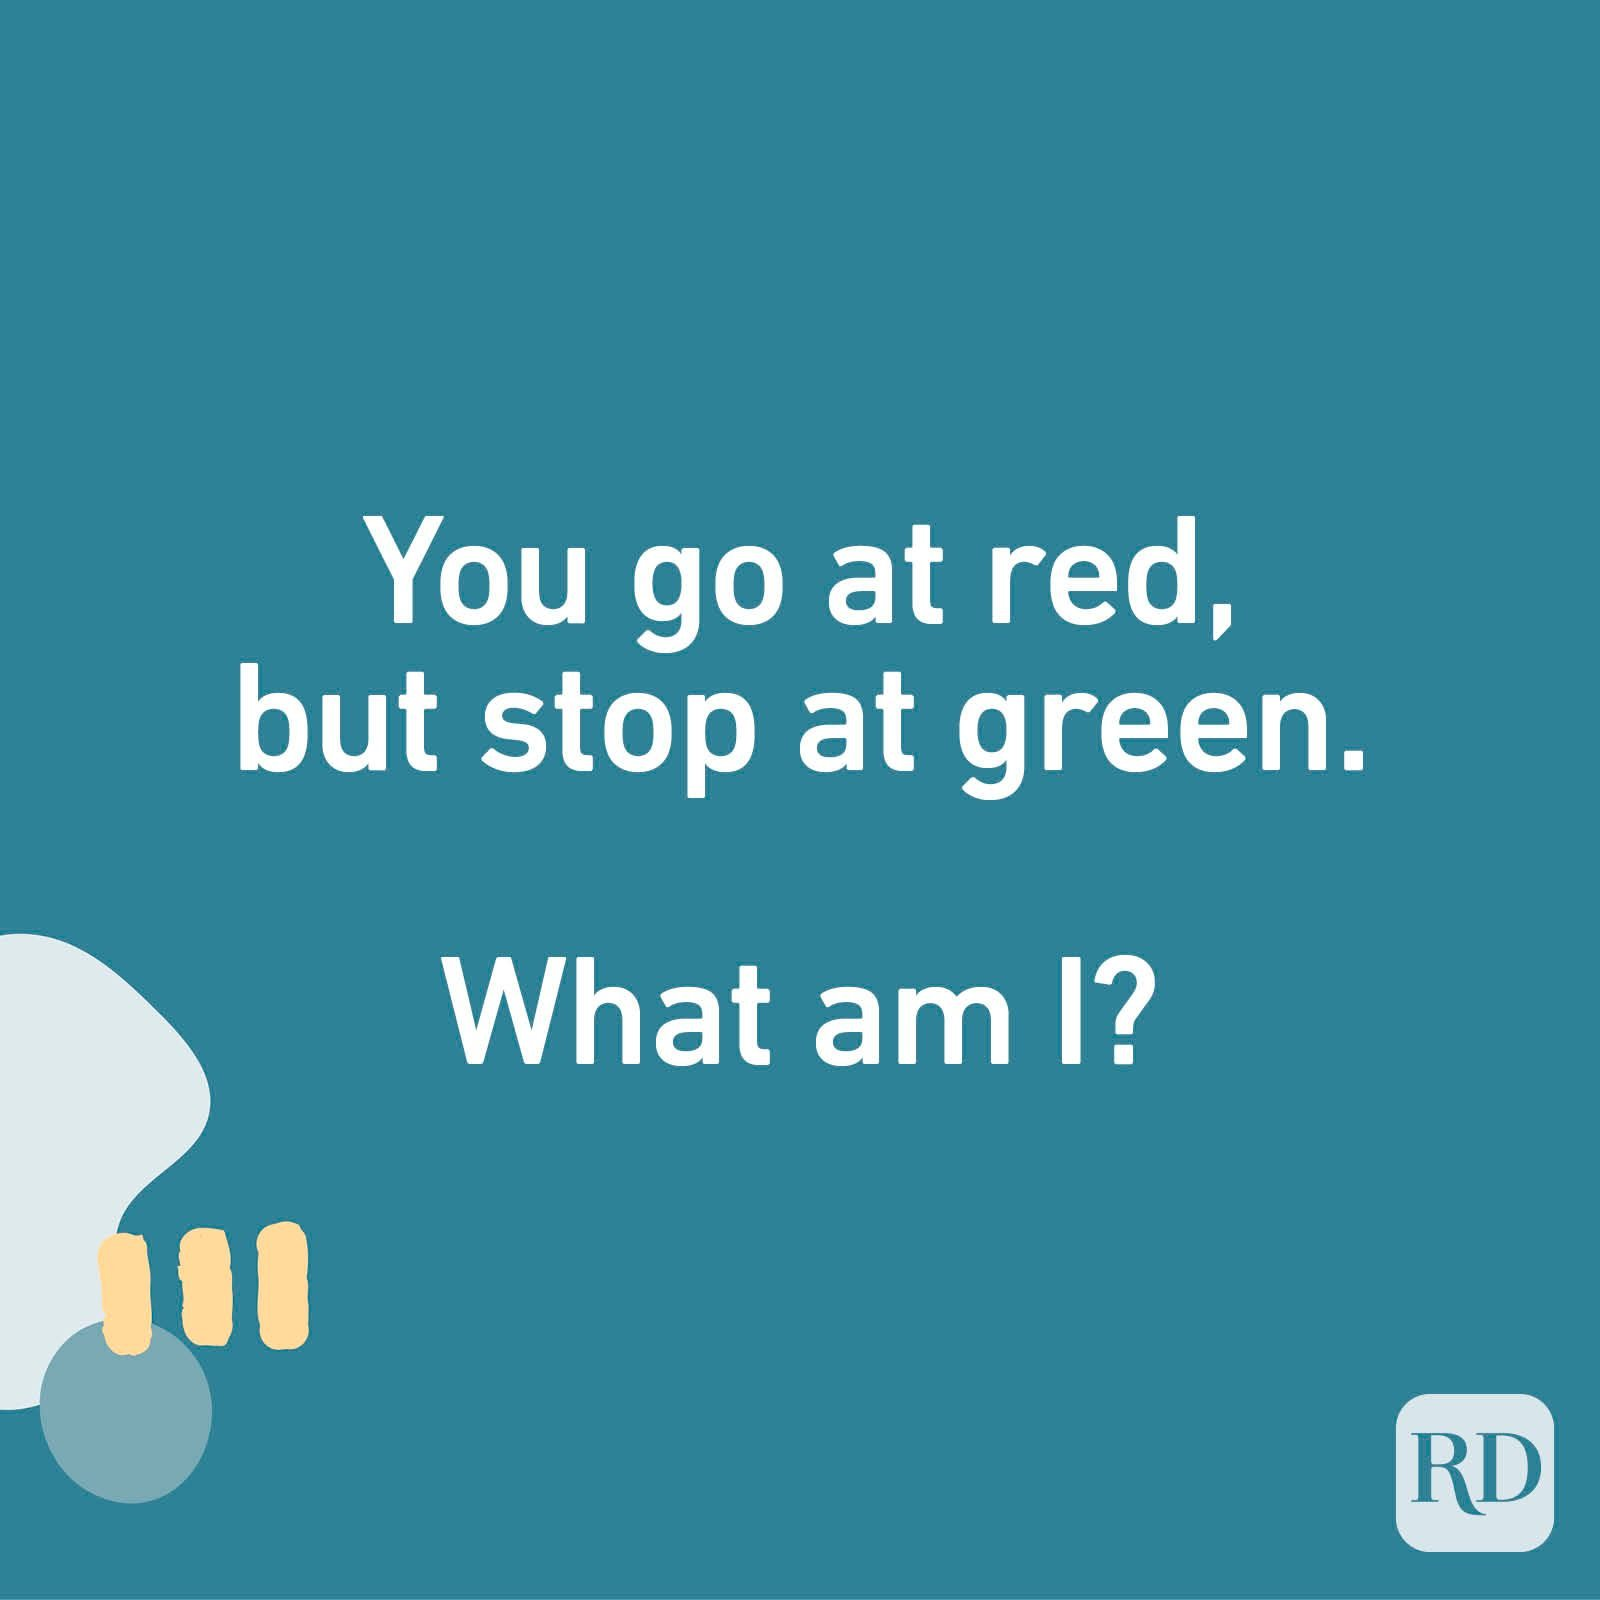 You go at red, but stop at green. What am I?